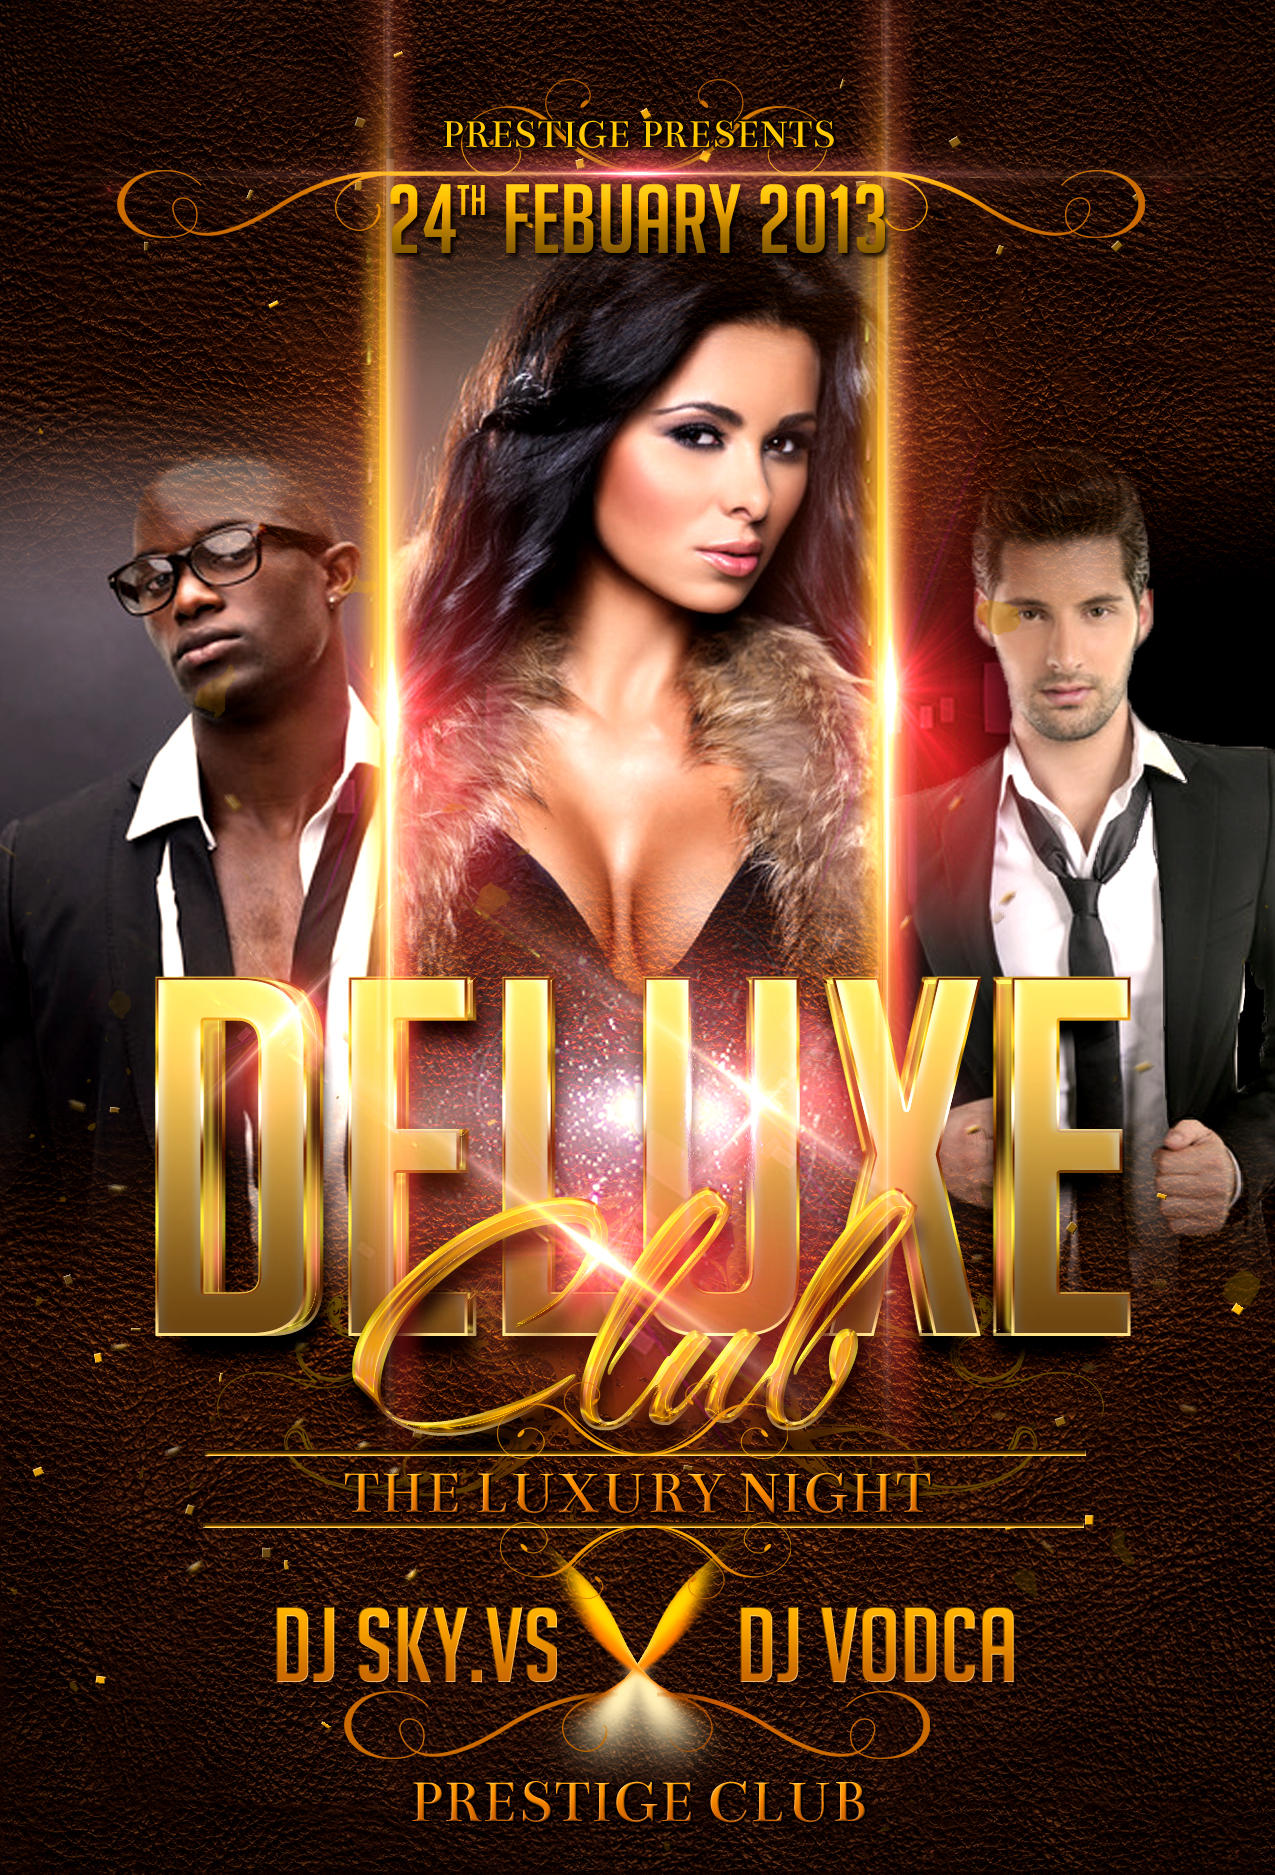 party club flyer design by graficandmedia on envato studio